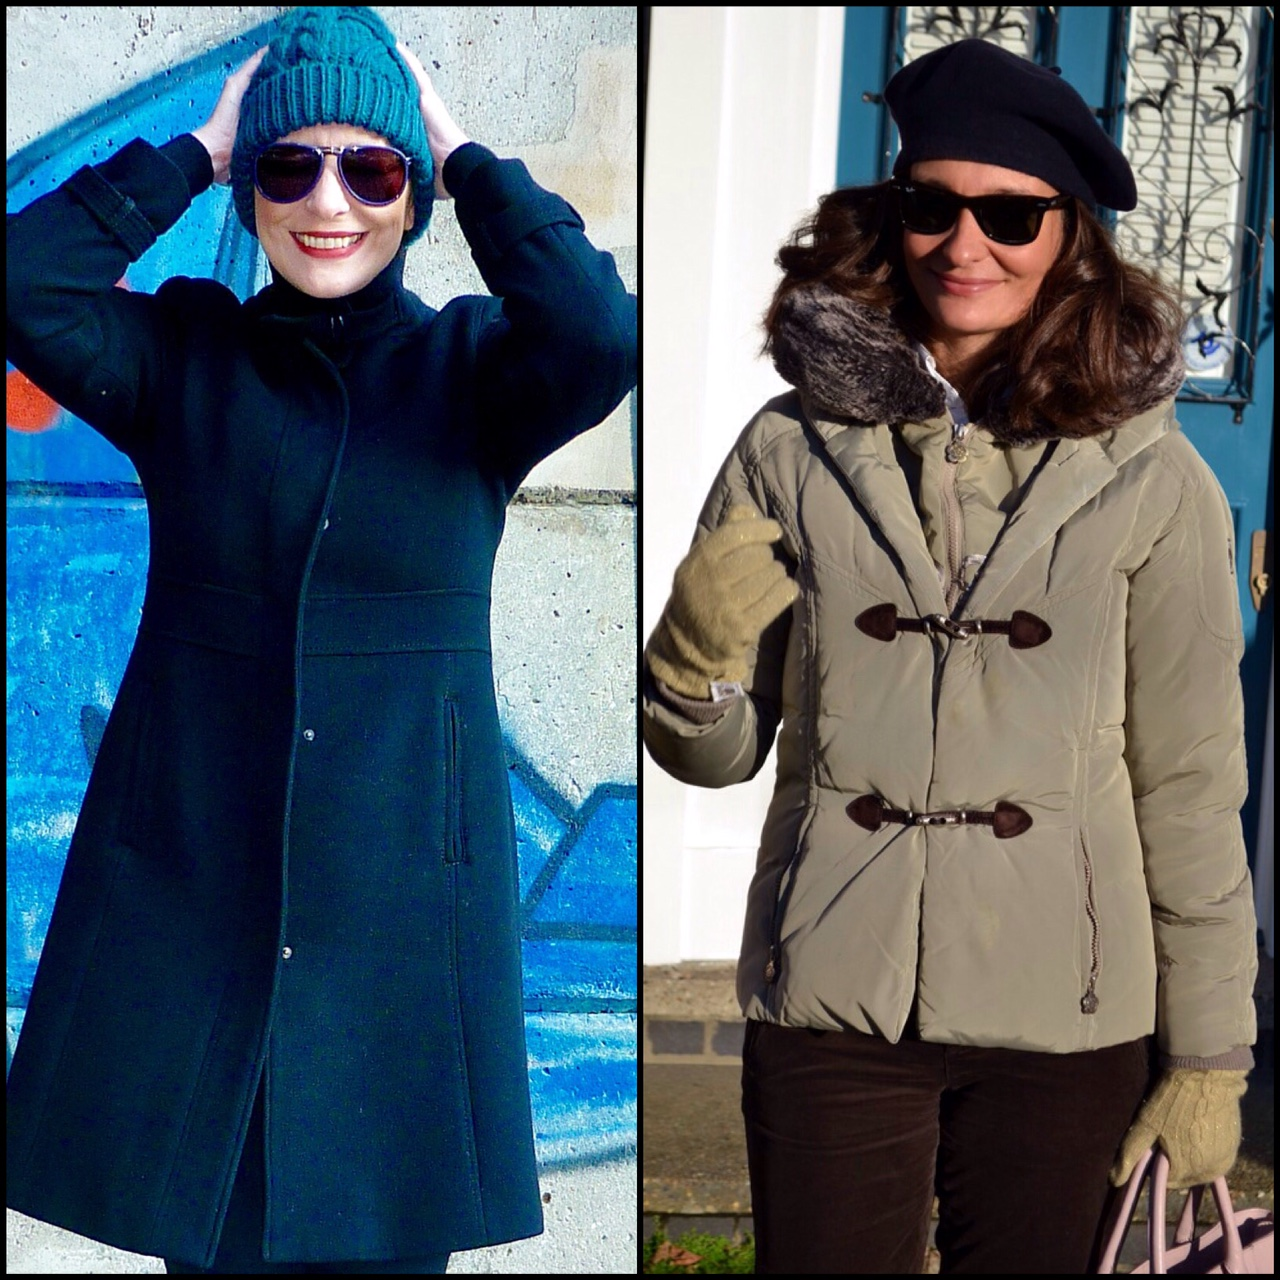 FAshion sisters winter warmers